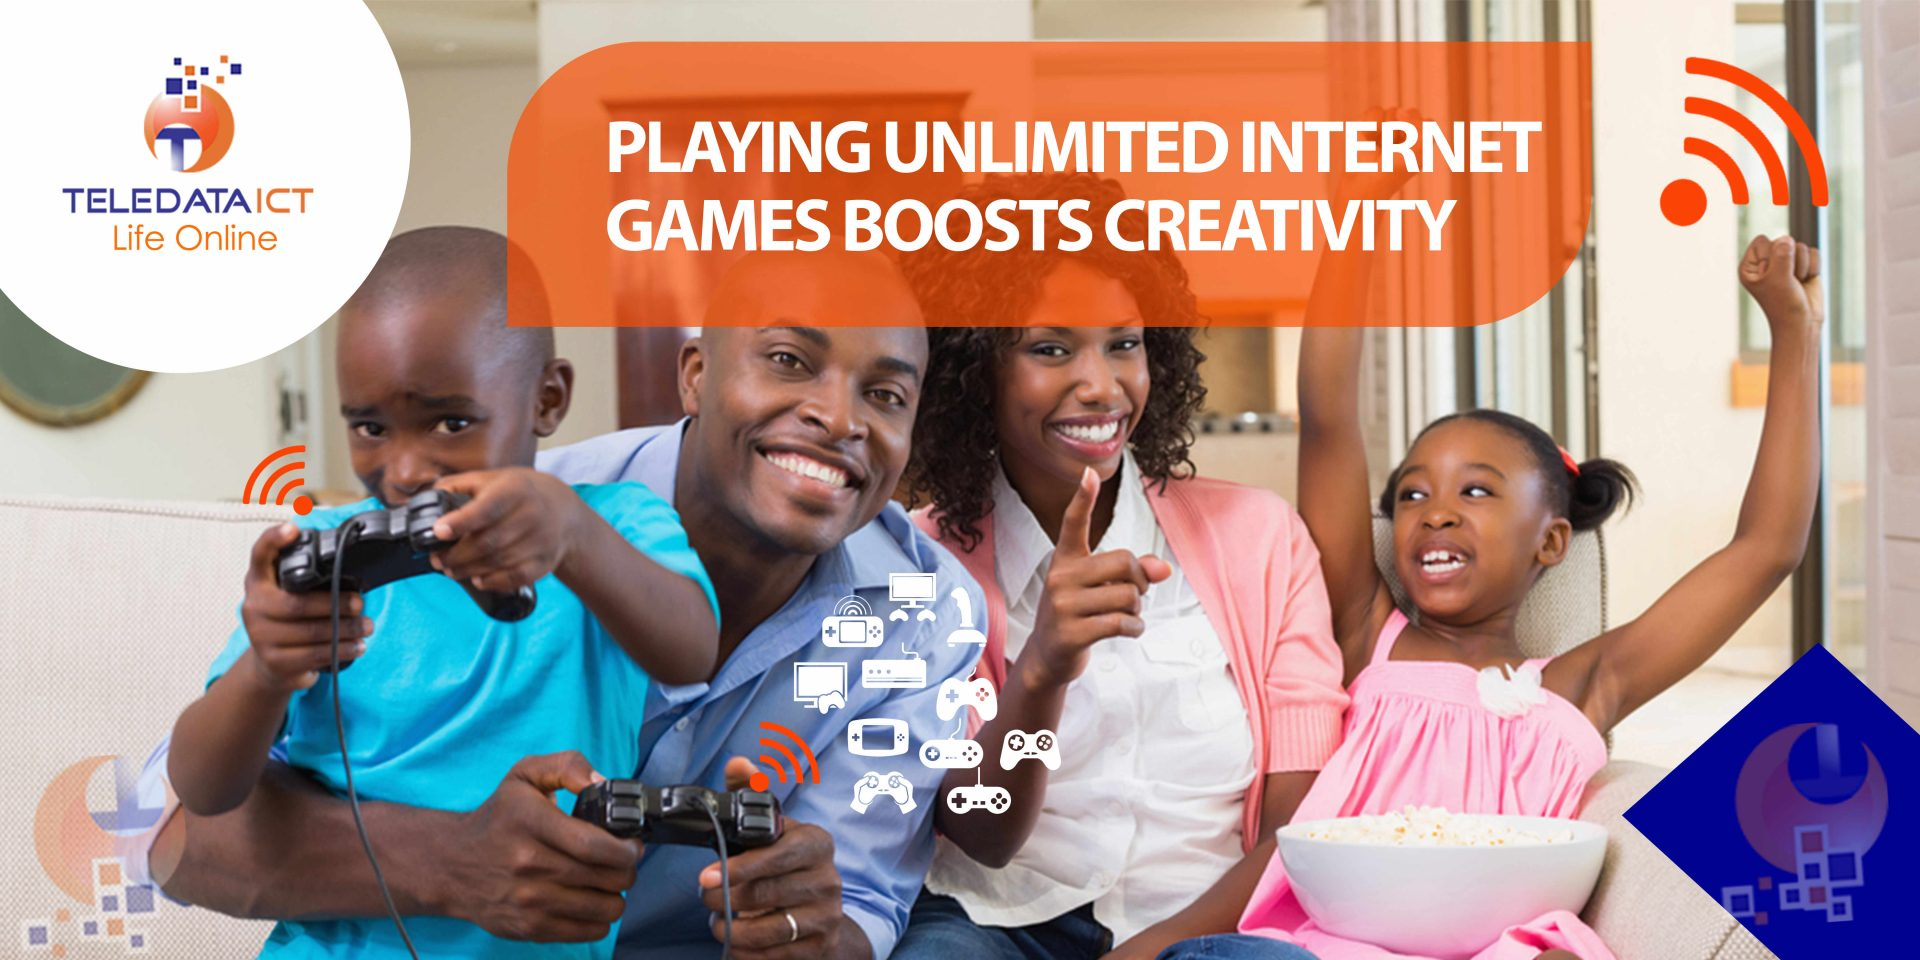 playing unlimited internet games boosts creativity